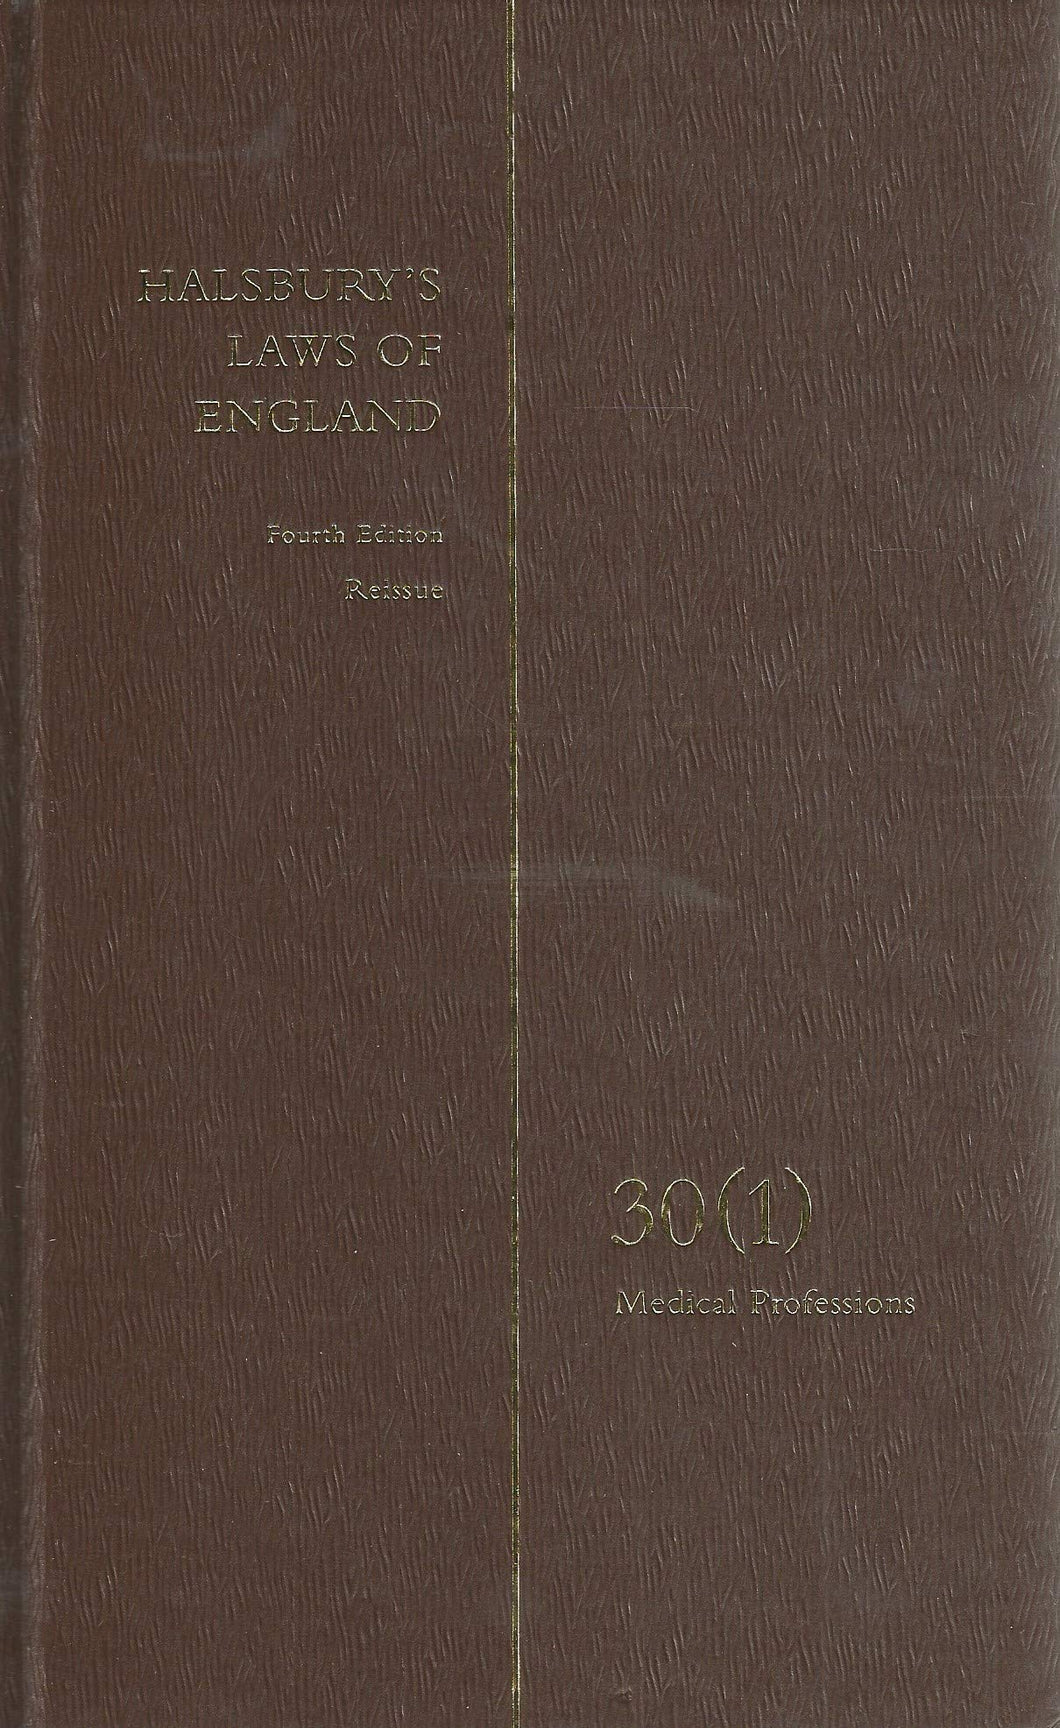 Halsbury's Laws of England, Fourth Edition, Reissue, Volume 30(1)